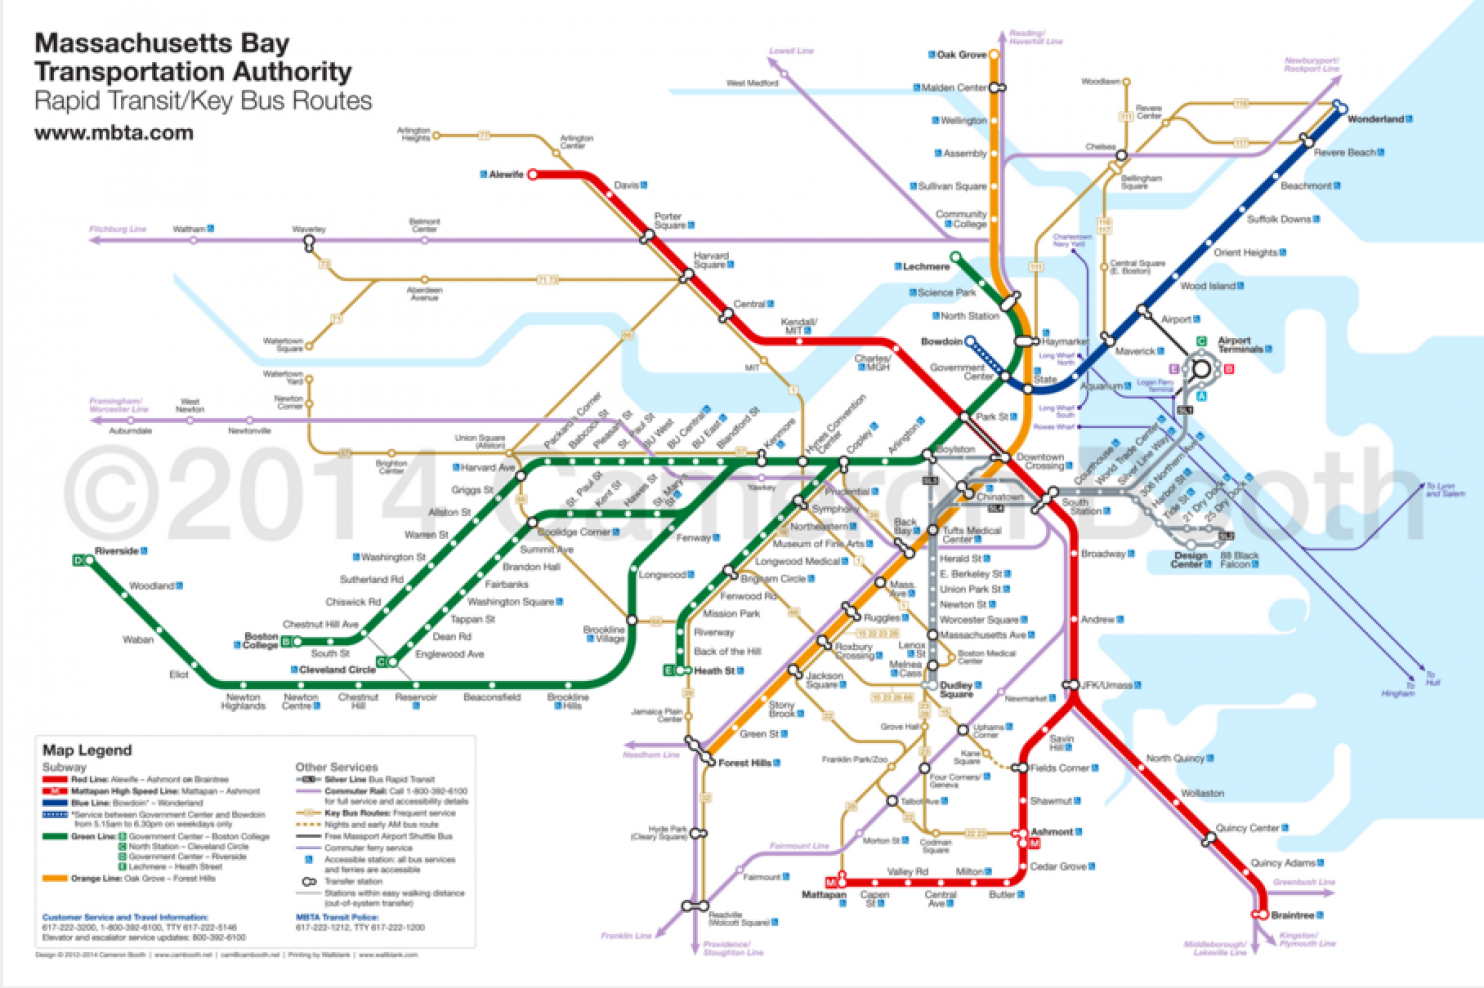 Boston T Subway Map.Why Designers Can T Stop Reinventing The Subway Map Cartographica